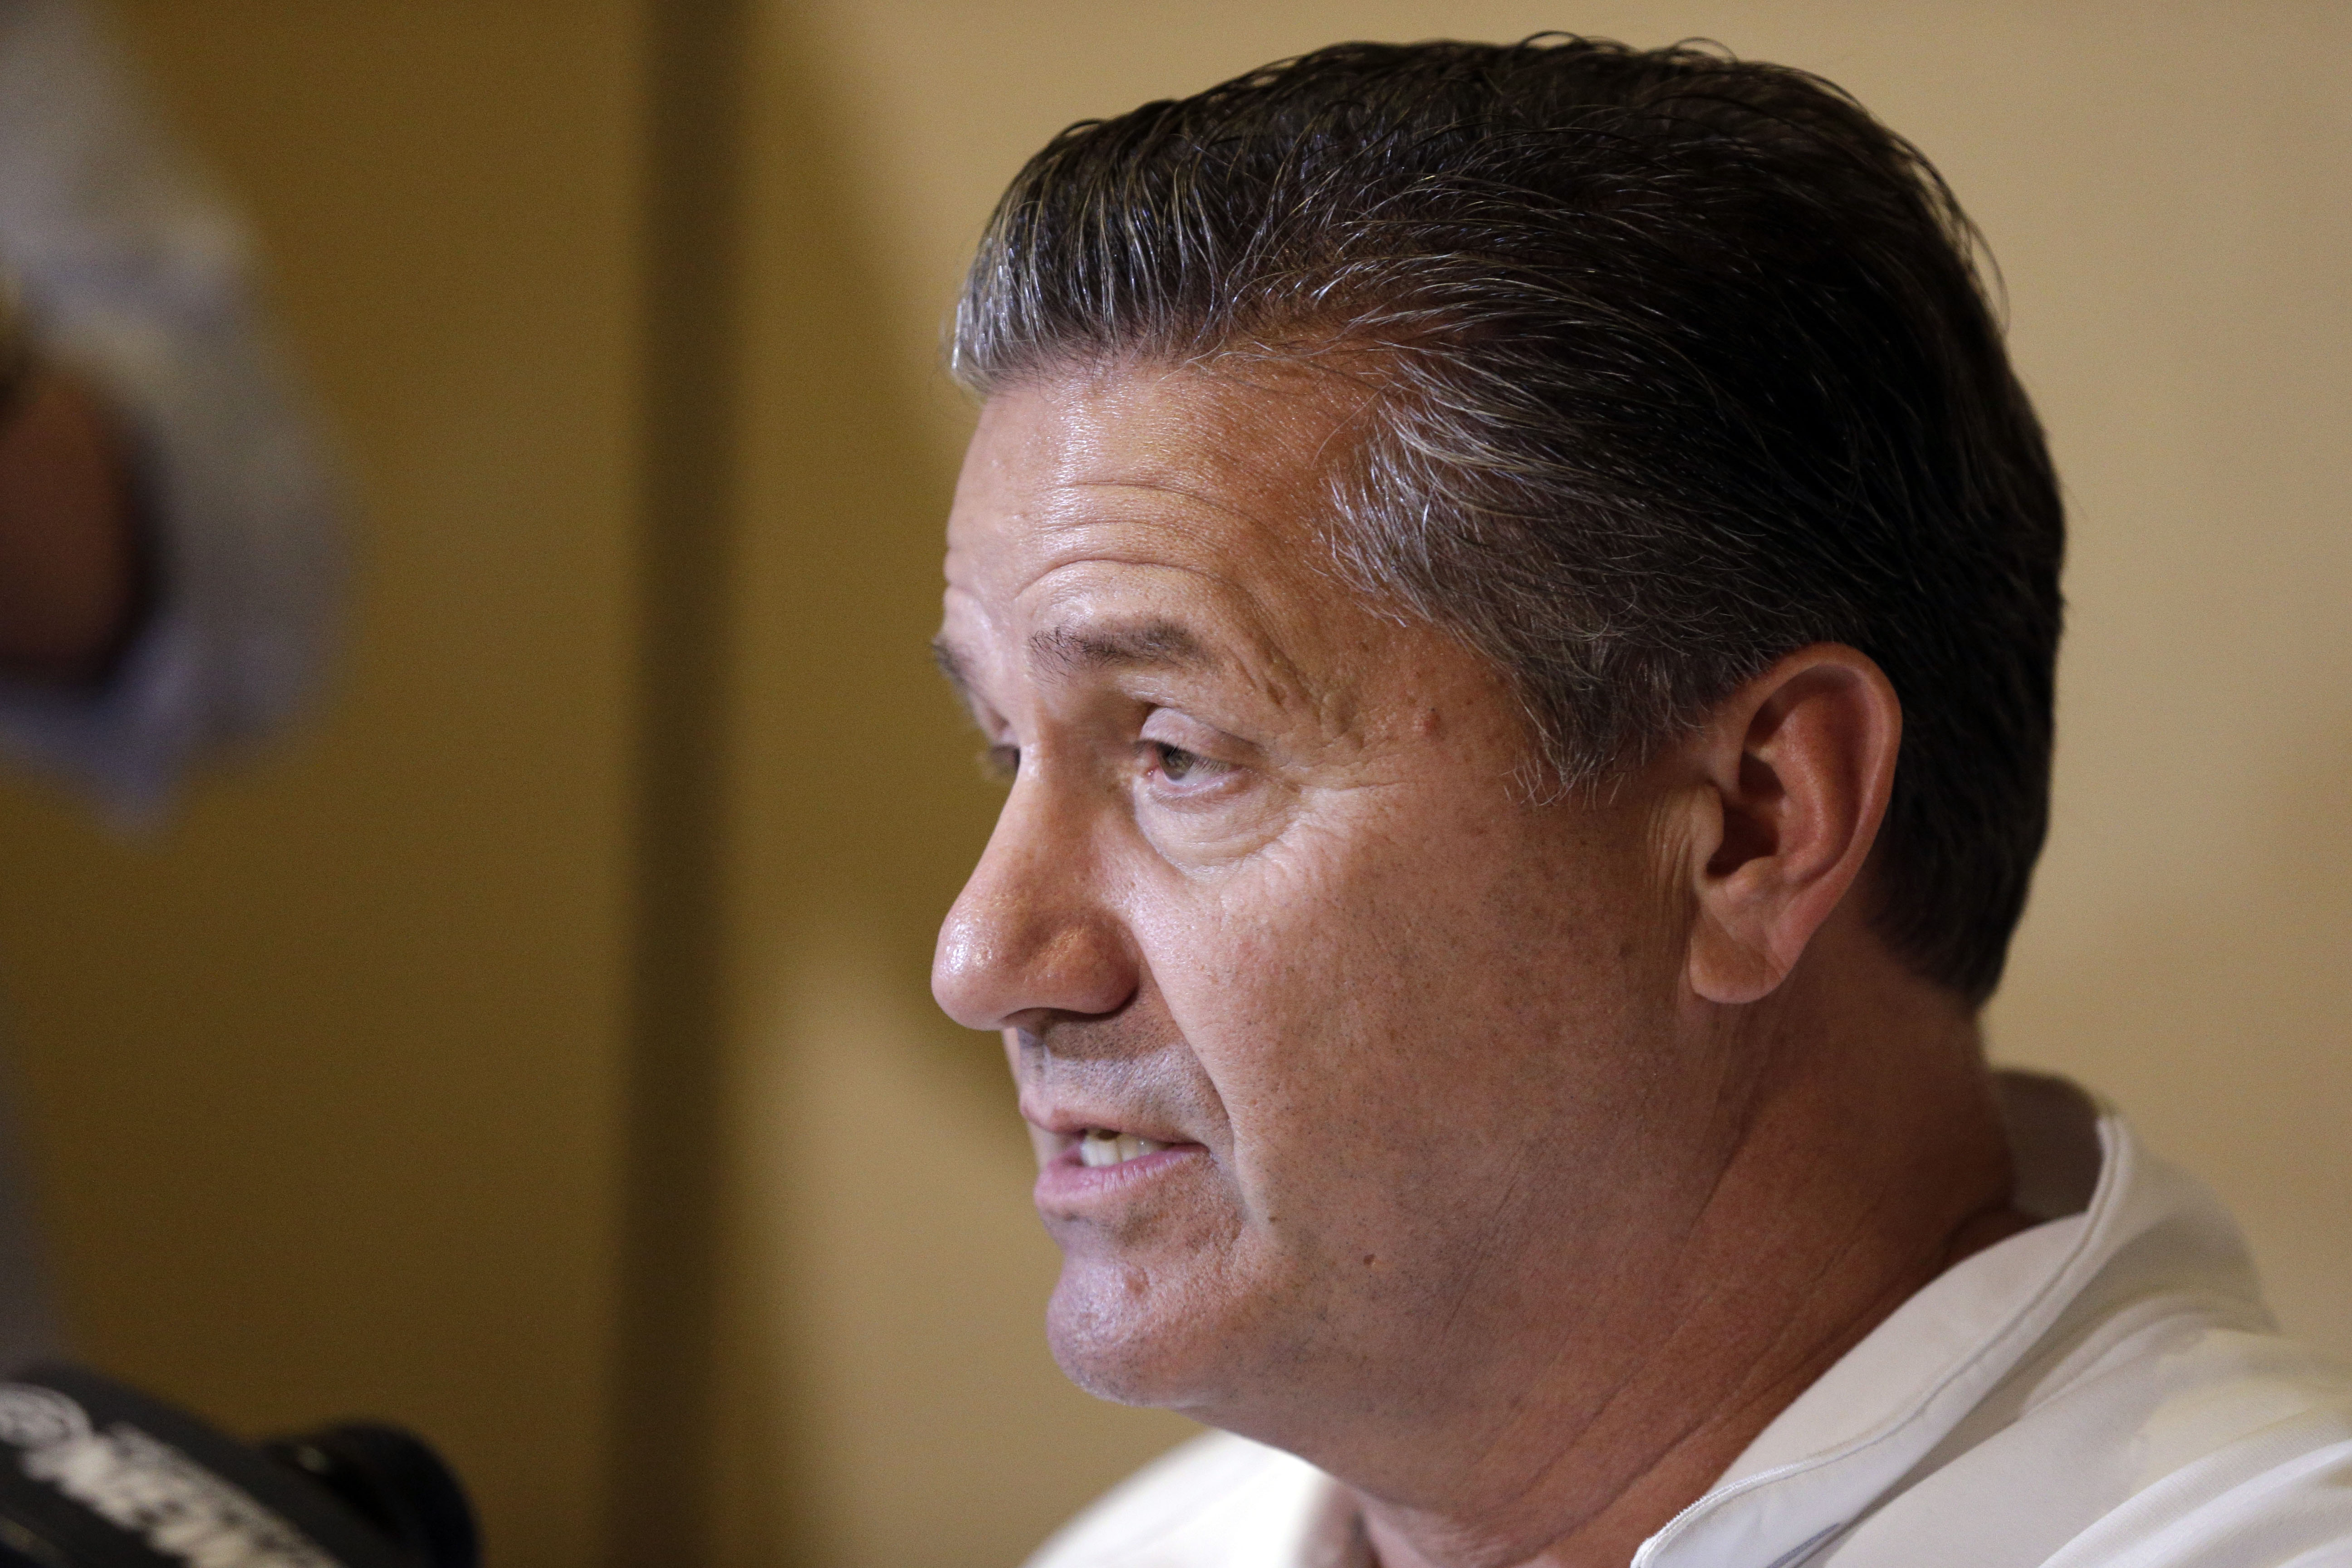 Kentucky head coach John Calipari answers a question during the Southeastern Conference men's NCAA college basketball media day in Charlotte, N.C., Wednesday, Oct. 21, 2015. (AP Photo/Chuck Burton)